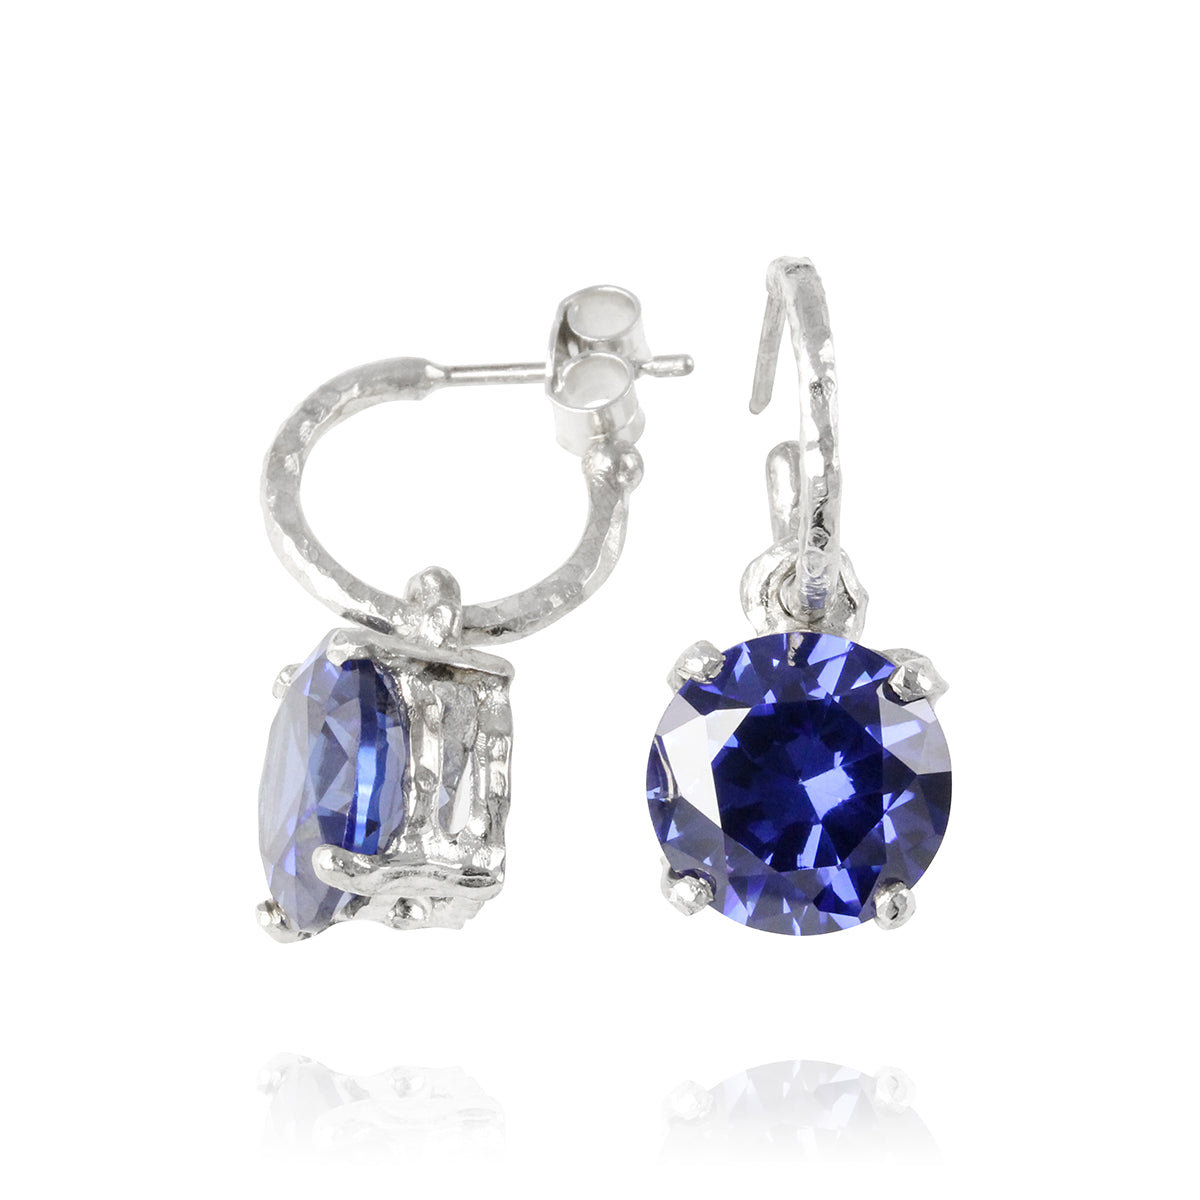 Drop earring in sterling silver set with blue coloured cubic zirconia. - Paul Magen